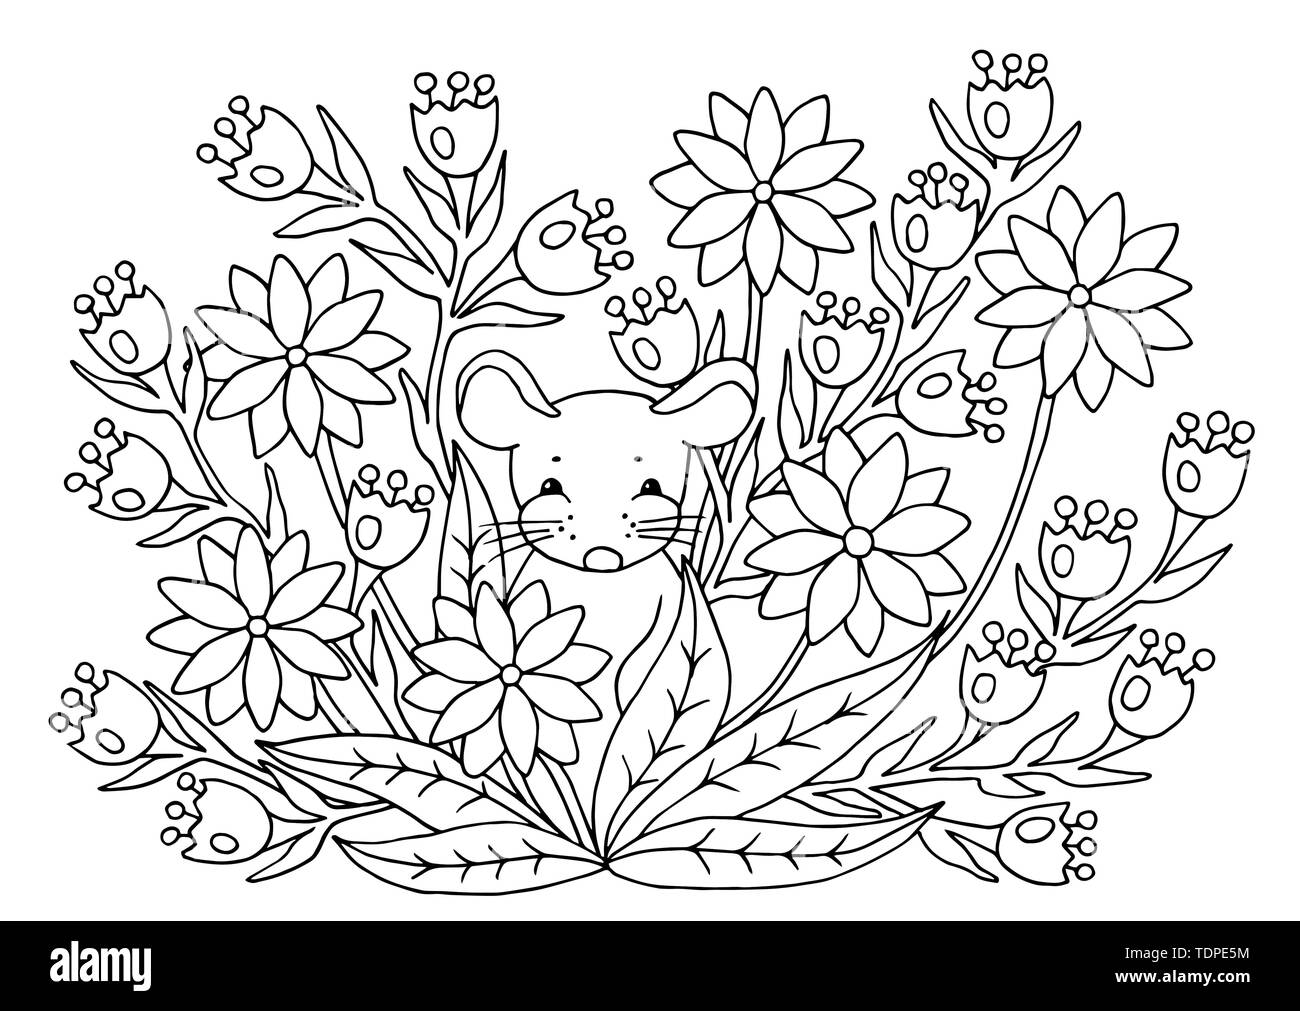 cute abstract coloring page with summer flowers and mouse for kids and adults TDPE5M